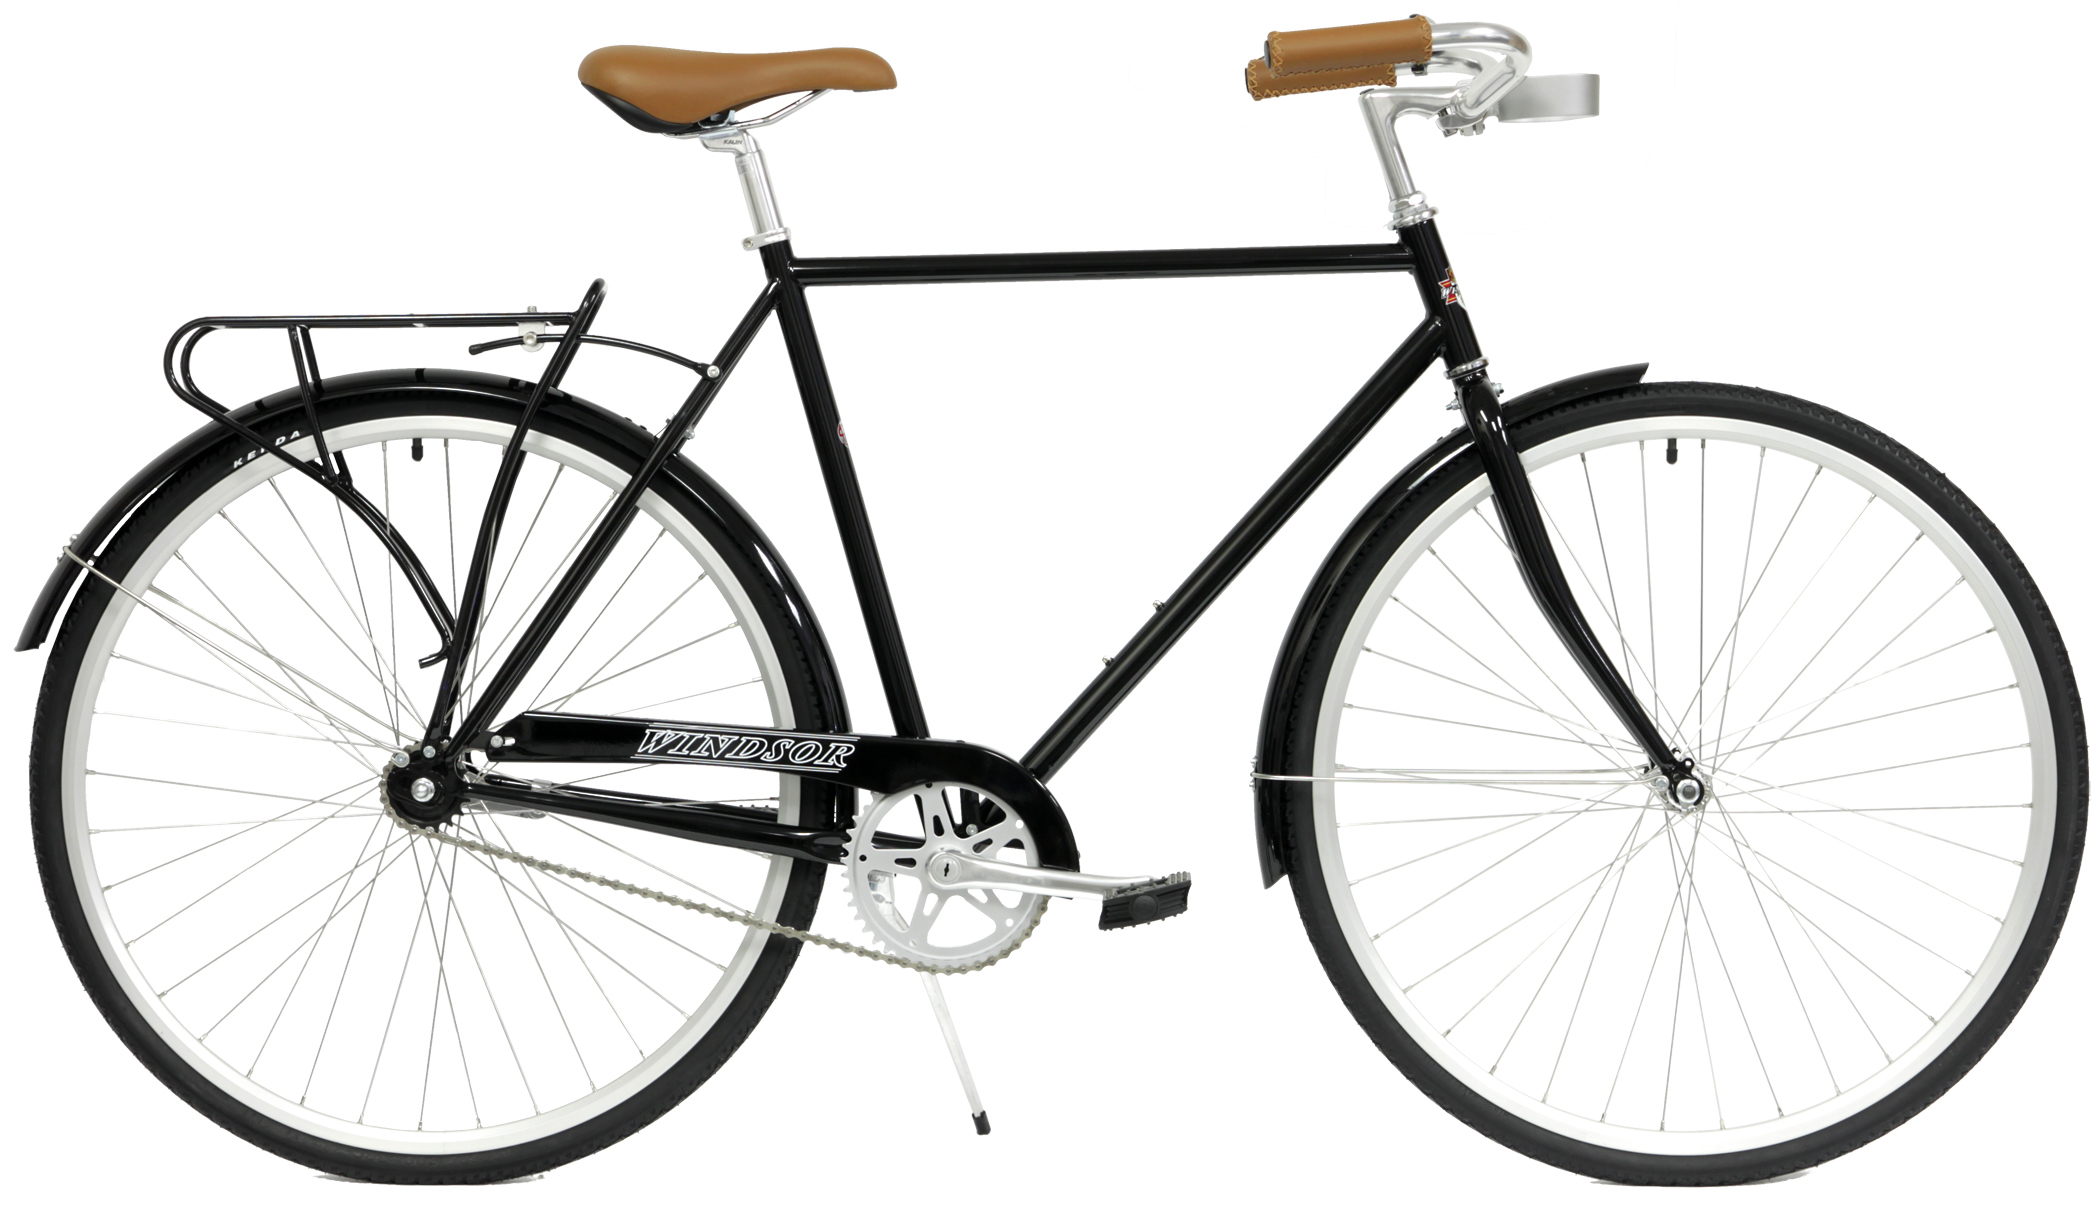 Lifestyle Bikes Windsor Essex Deluxe Essex Deluxe Chromoly